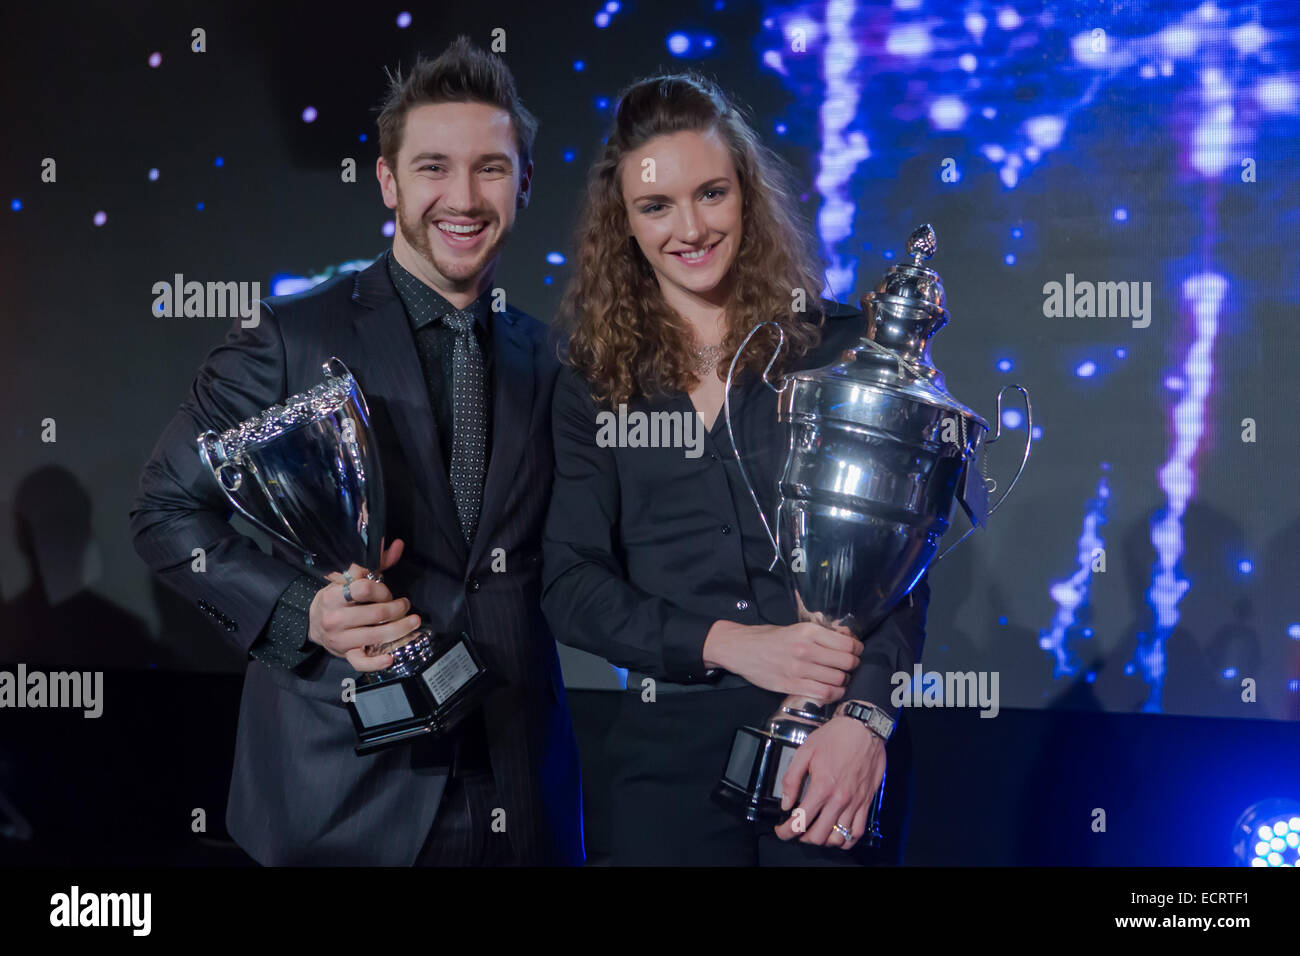 Budapest, Hungary. 18th Dec, 2014. Hungarian Sportswoman of the Year 2014 Katinka Hosszu (R) and her husband and Stock Photo